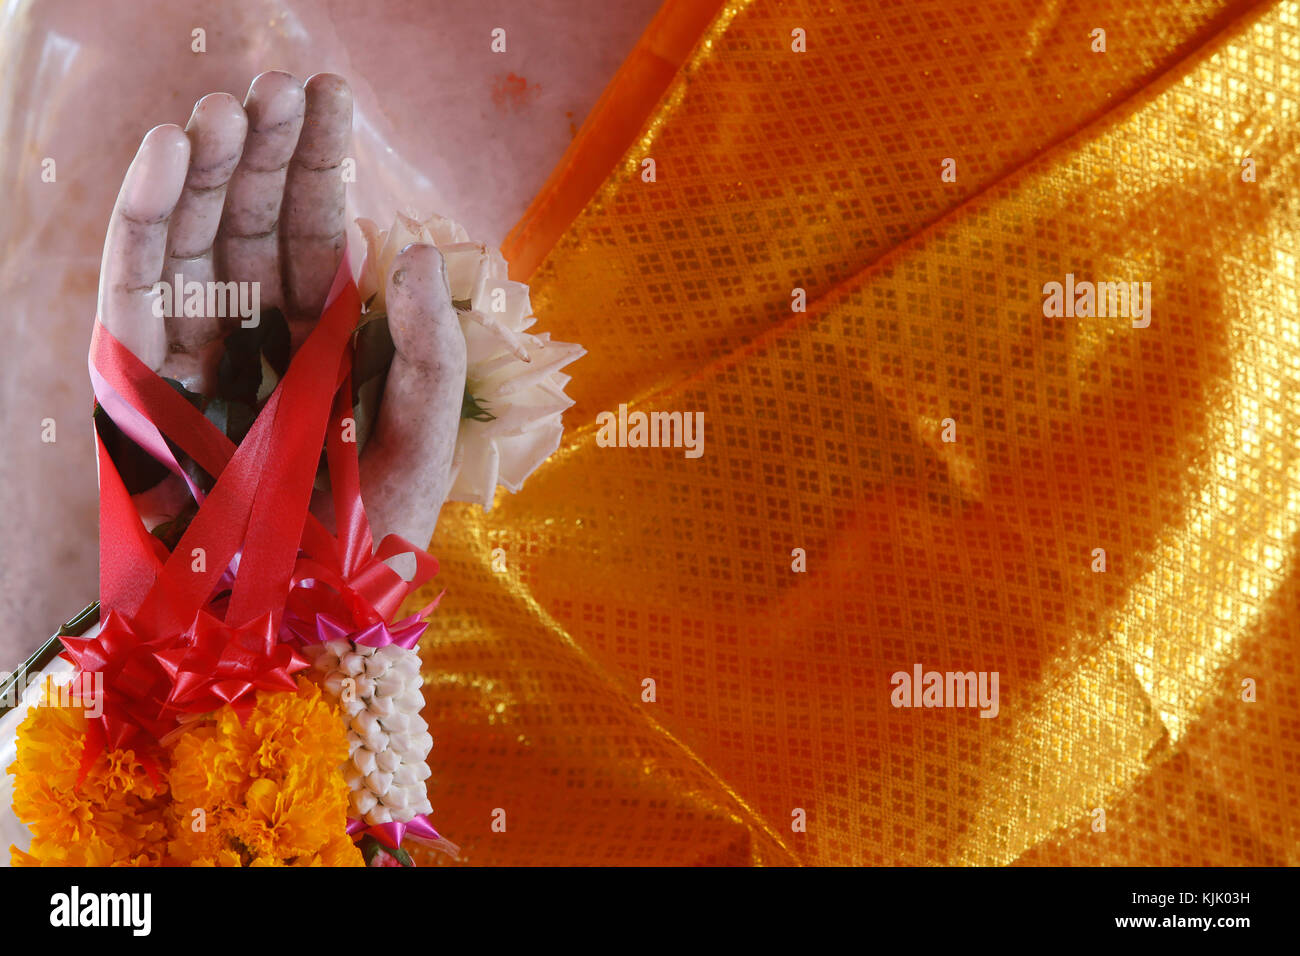 Detail of a garlanded Buddha statue in Wat Phra Doi Suthep, Chiang Mai. Thailand. - Stock Image